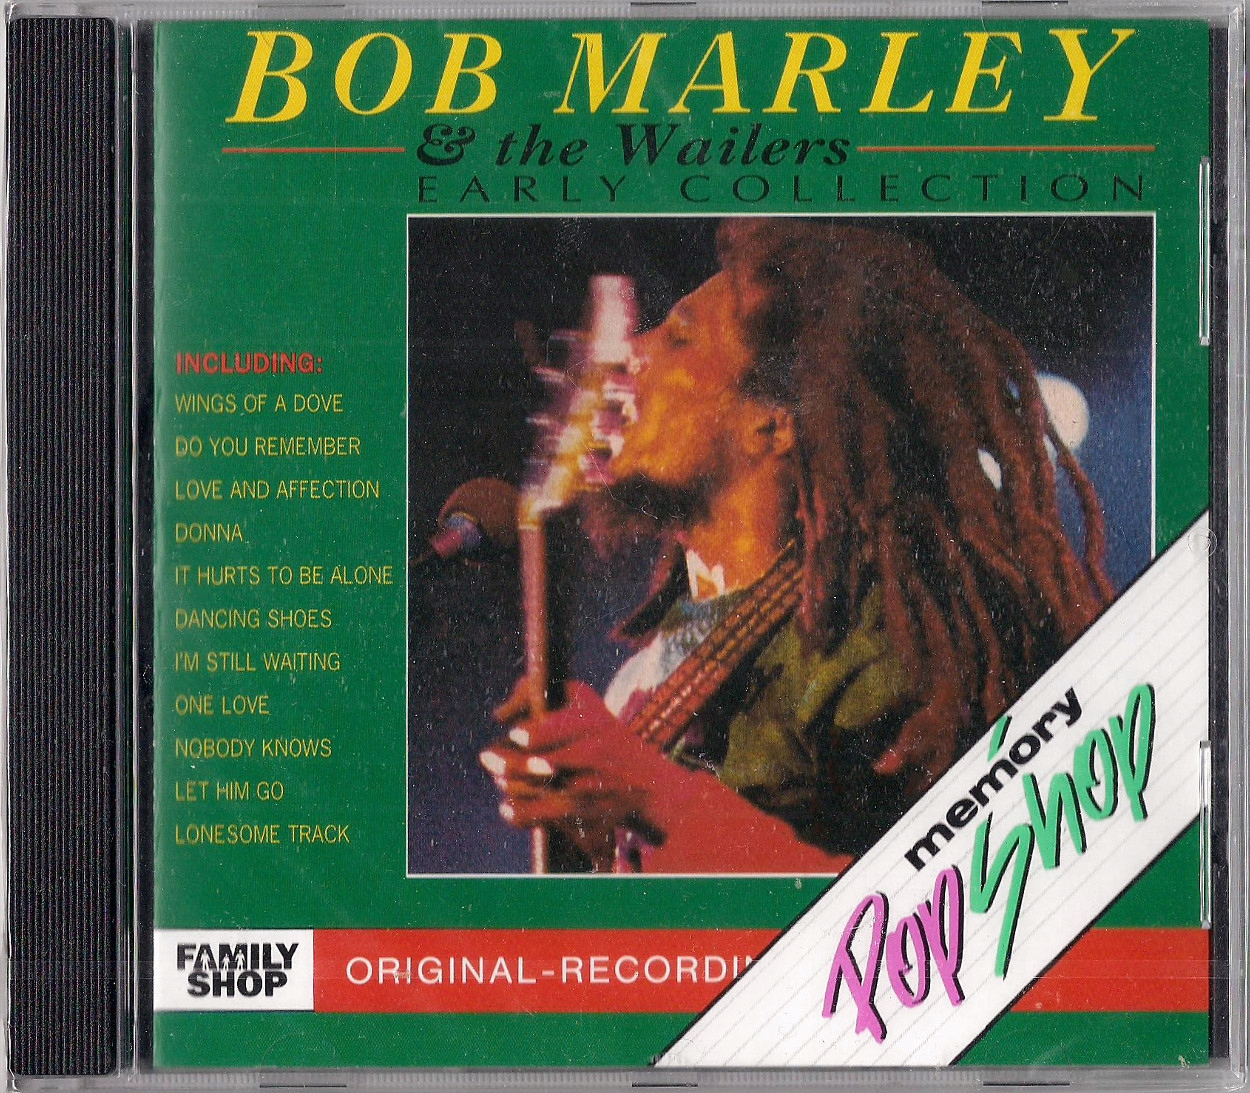 BOB MARLEY AND THE WAILERS - EARLY COLLECTION [CD] доставка товаров из Польши и Allegro на русском